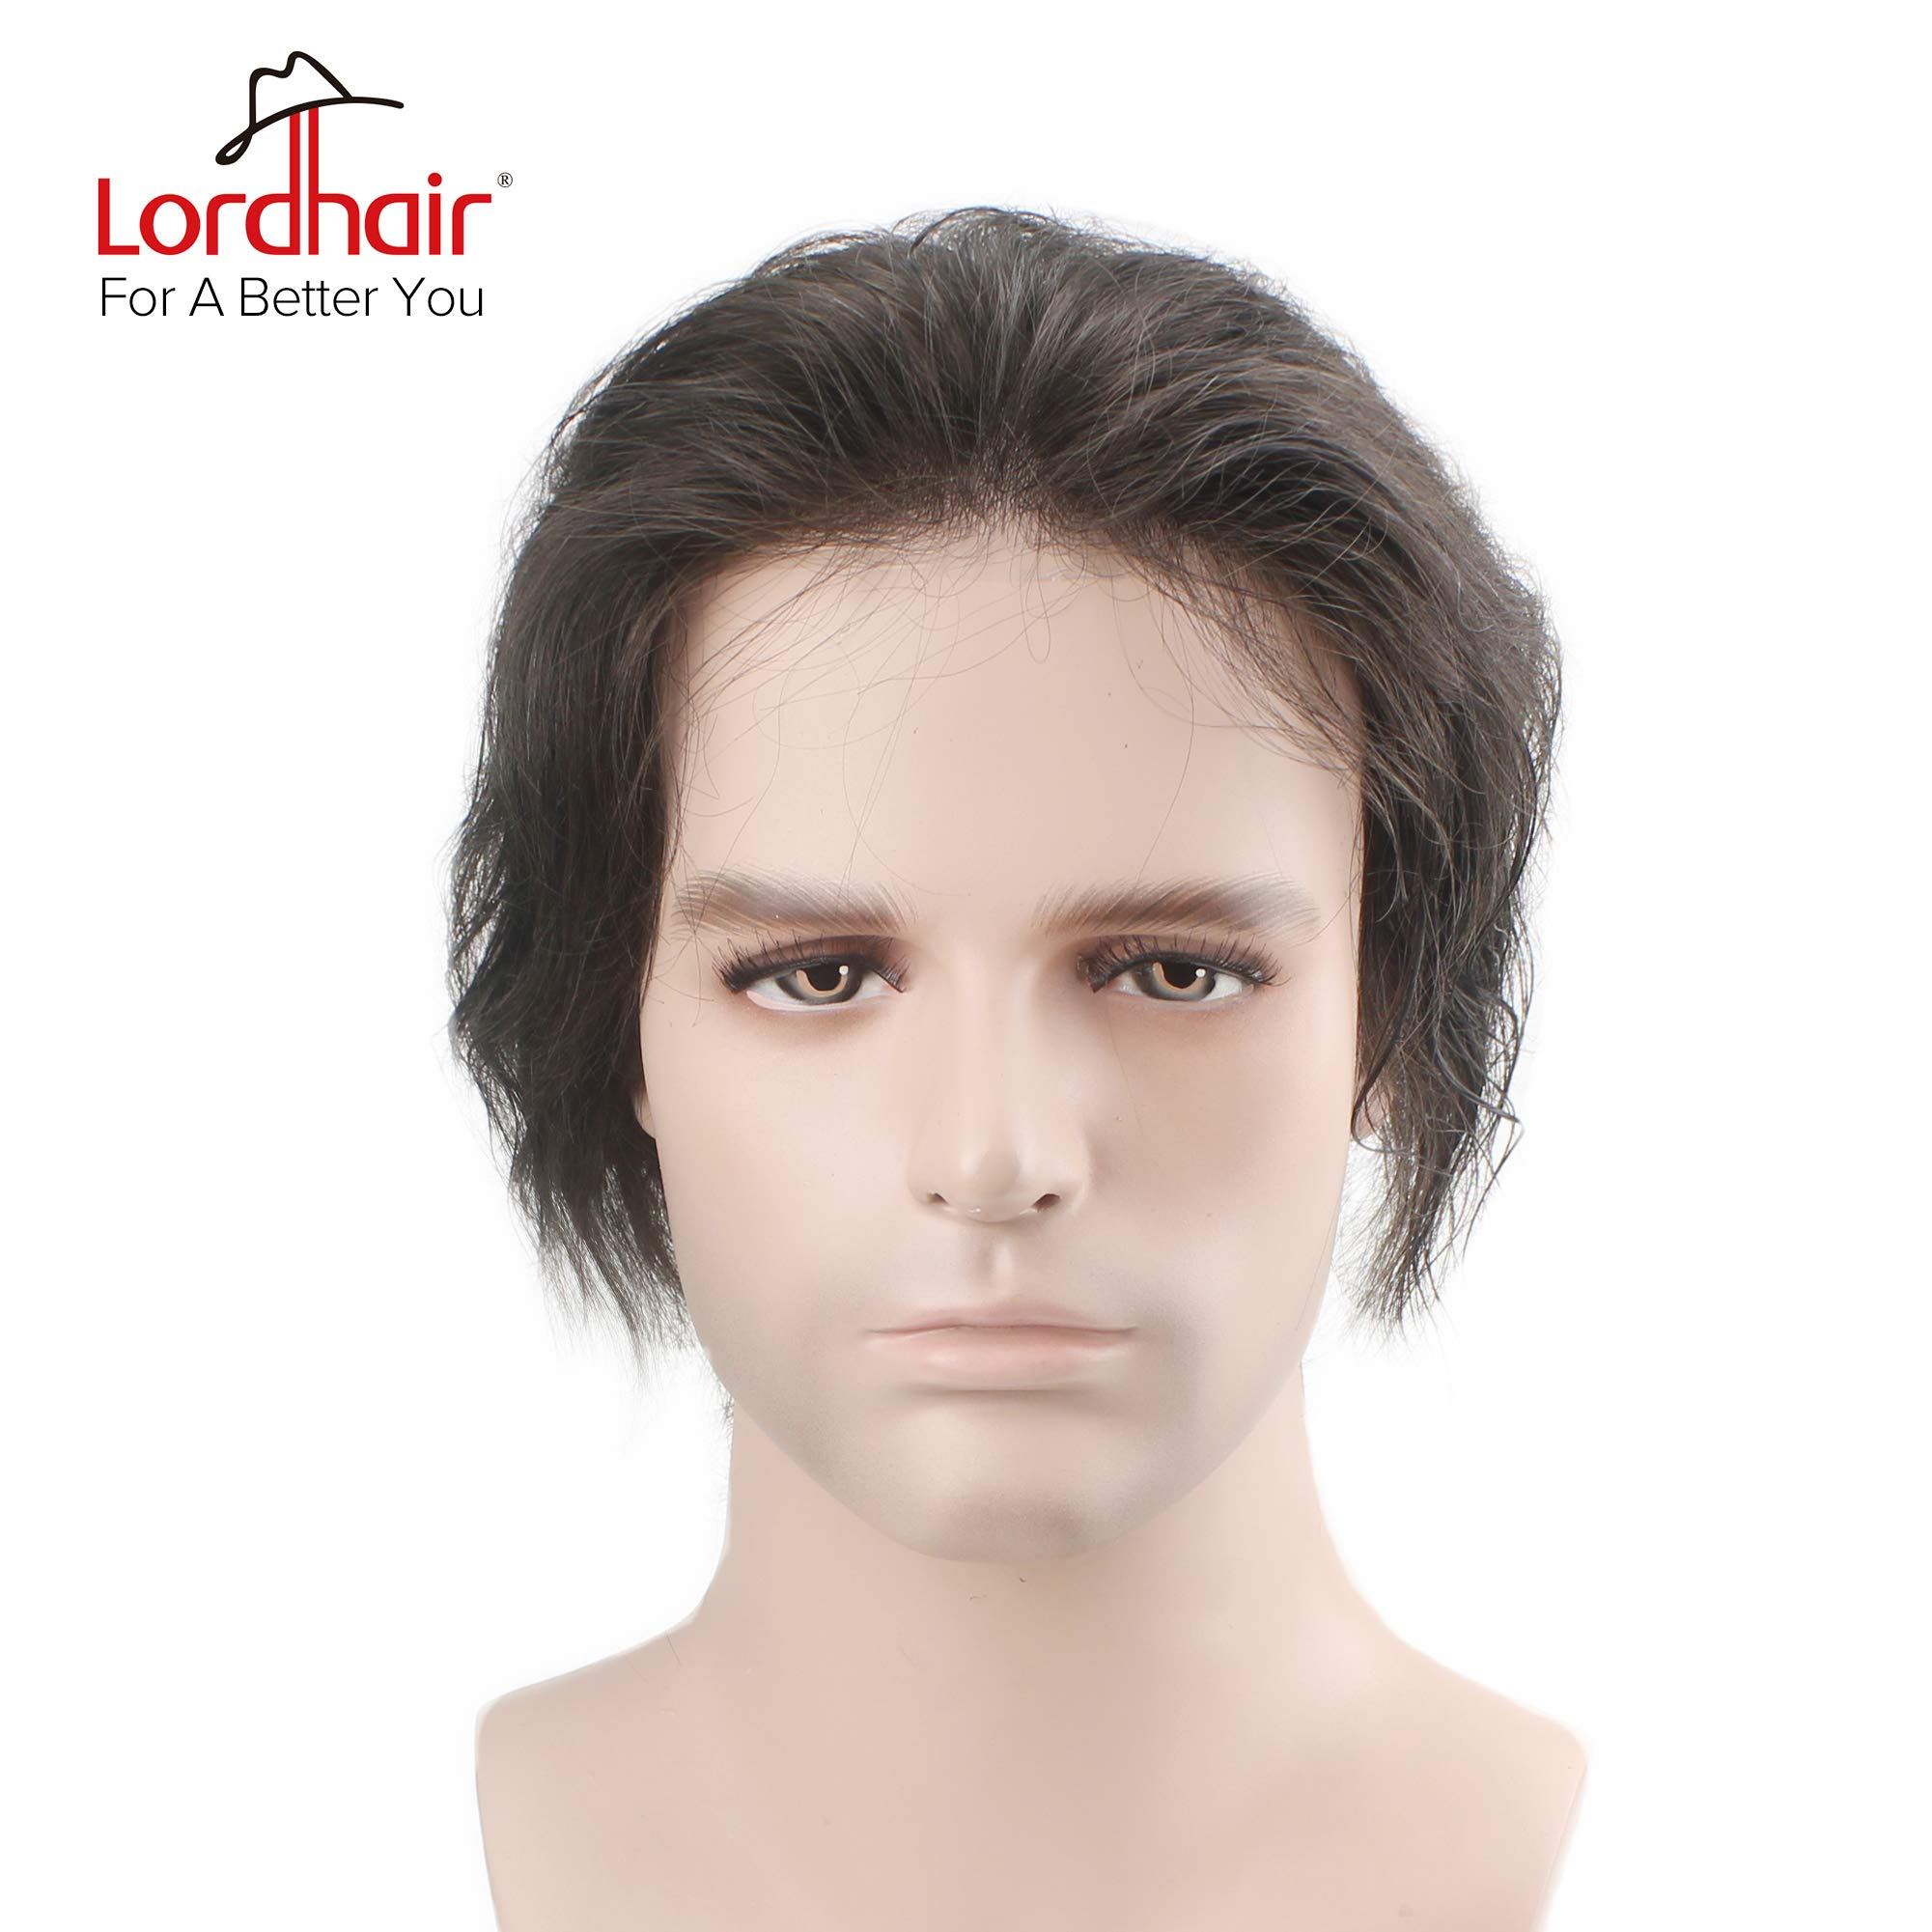 Lordhair Ultra Thin Skin Men's Toupee Hair Replacement Color #1B Toupee For Men